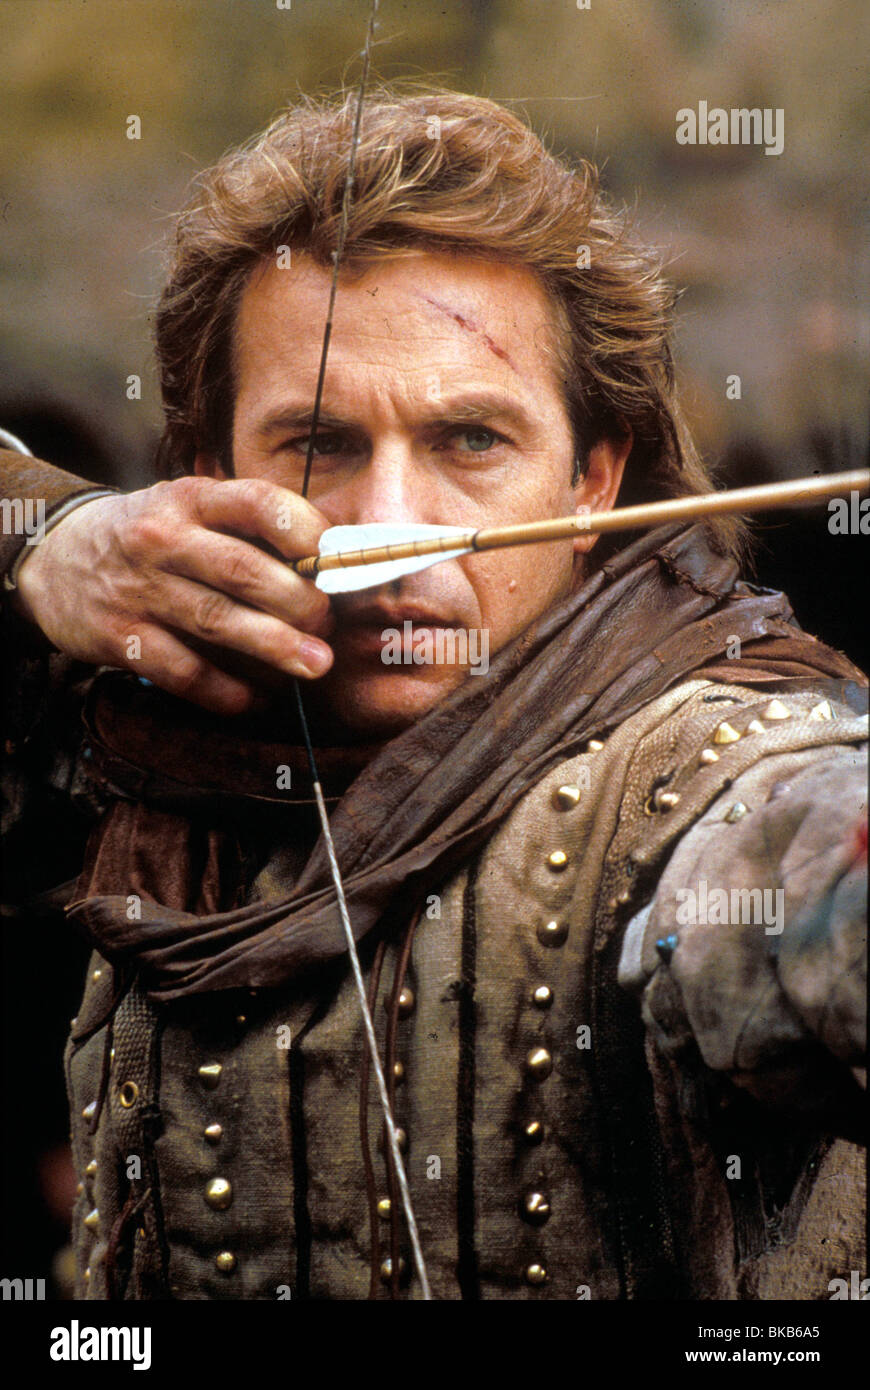 ROBIN HOOD: PRINCE OF THIEVES (1991) KEVIN COSTNER RHP 005 H - Stock Image